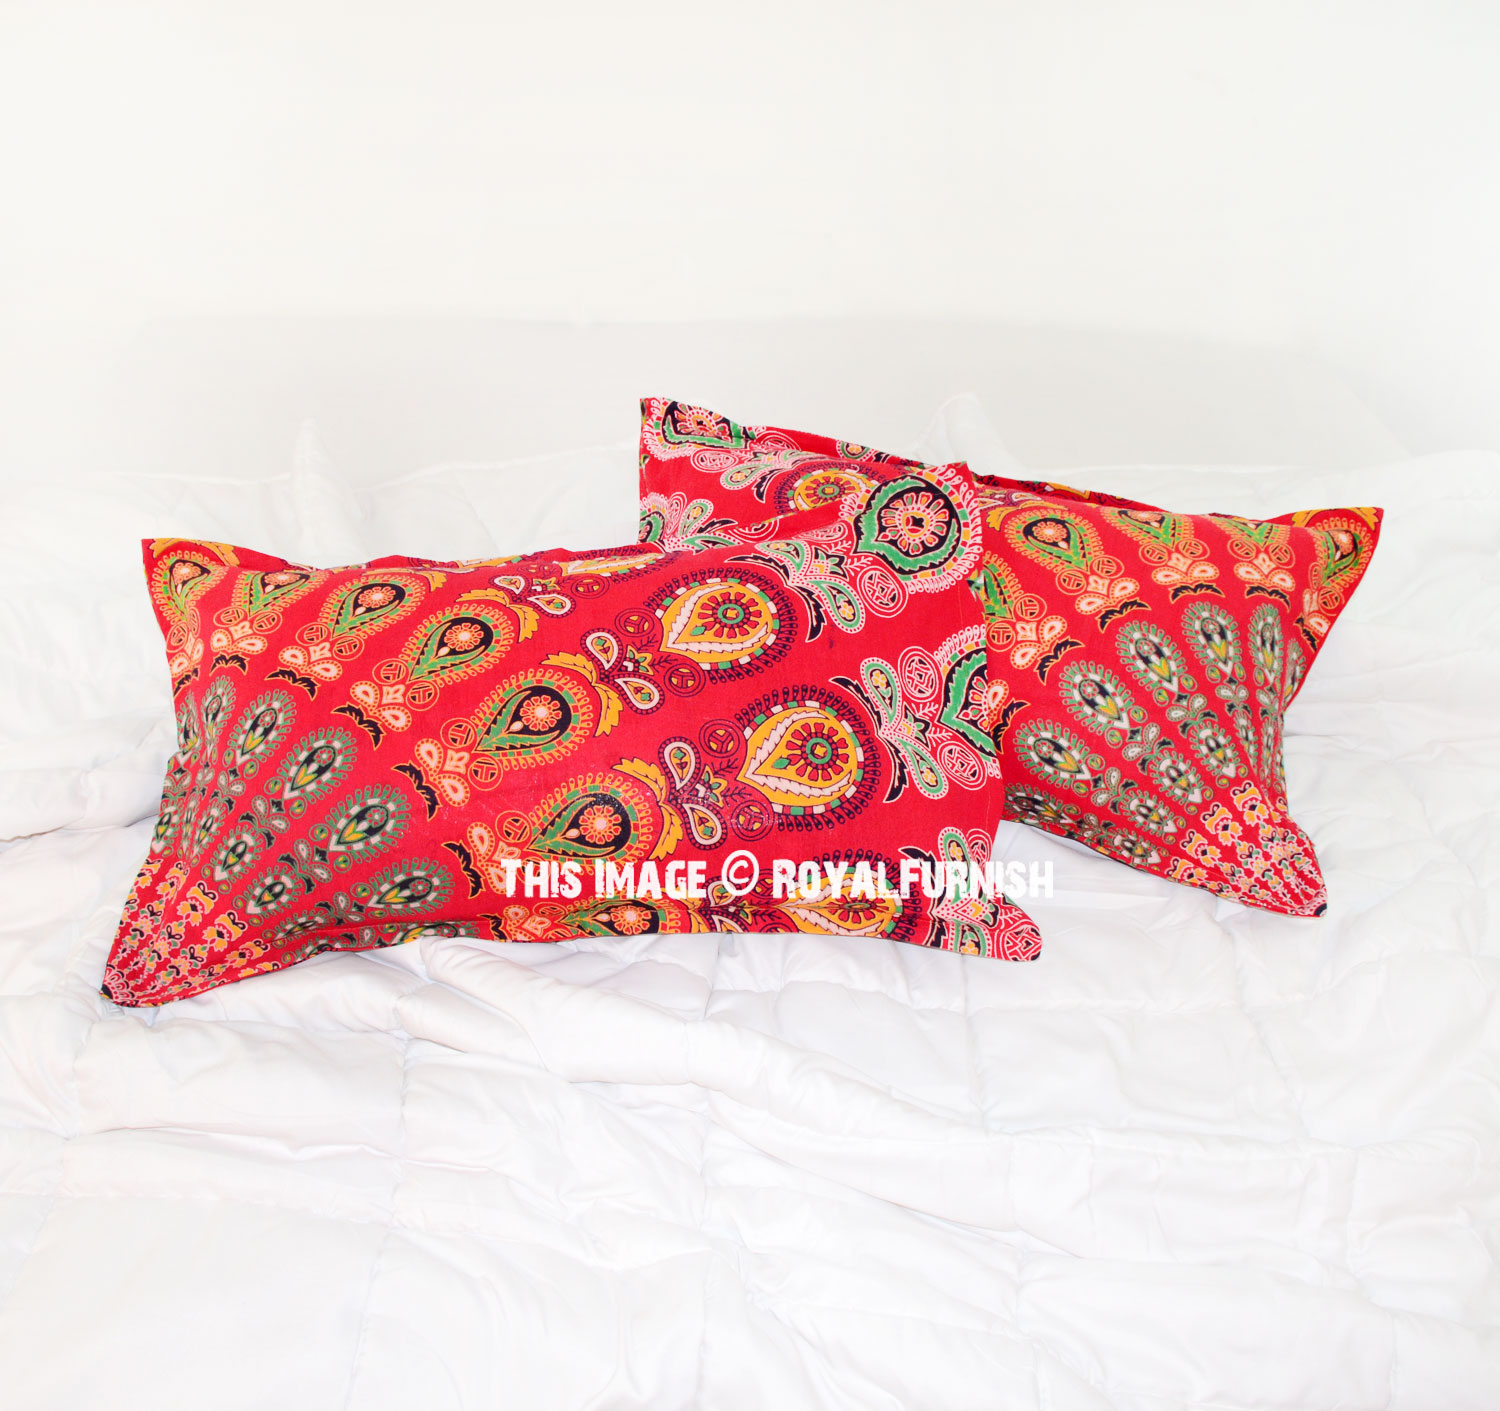 Red Throw Pillow For Bed : Red Boho Chic Peacock Mandala Bed Pillow Cases Set of Two - RoyalFurnish.com